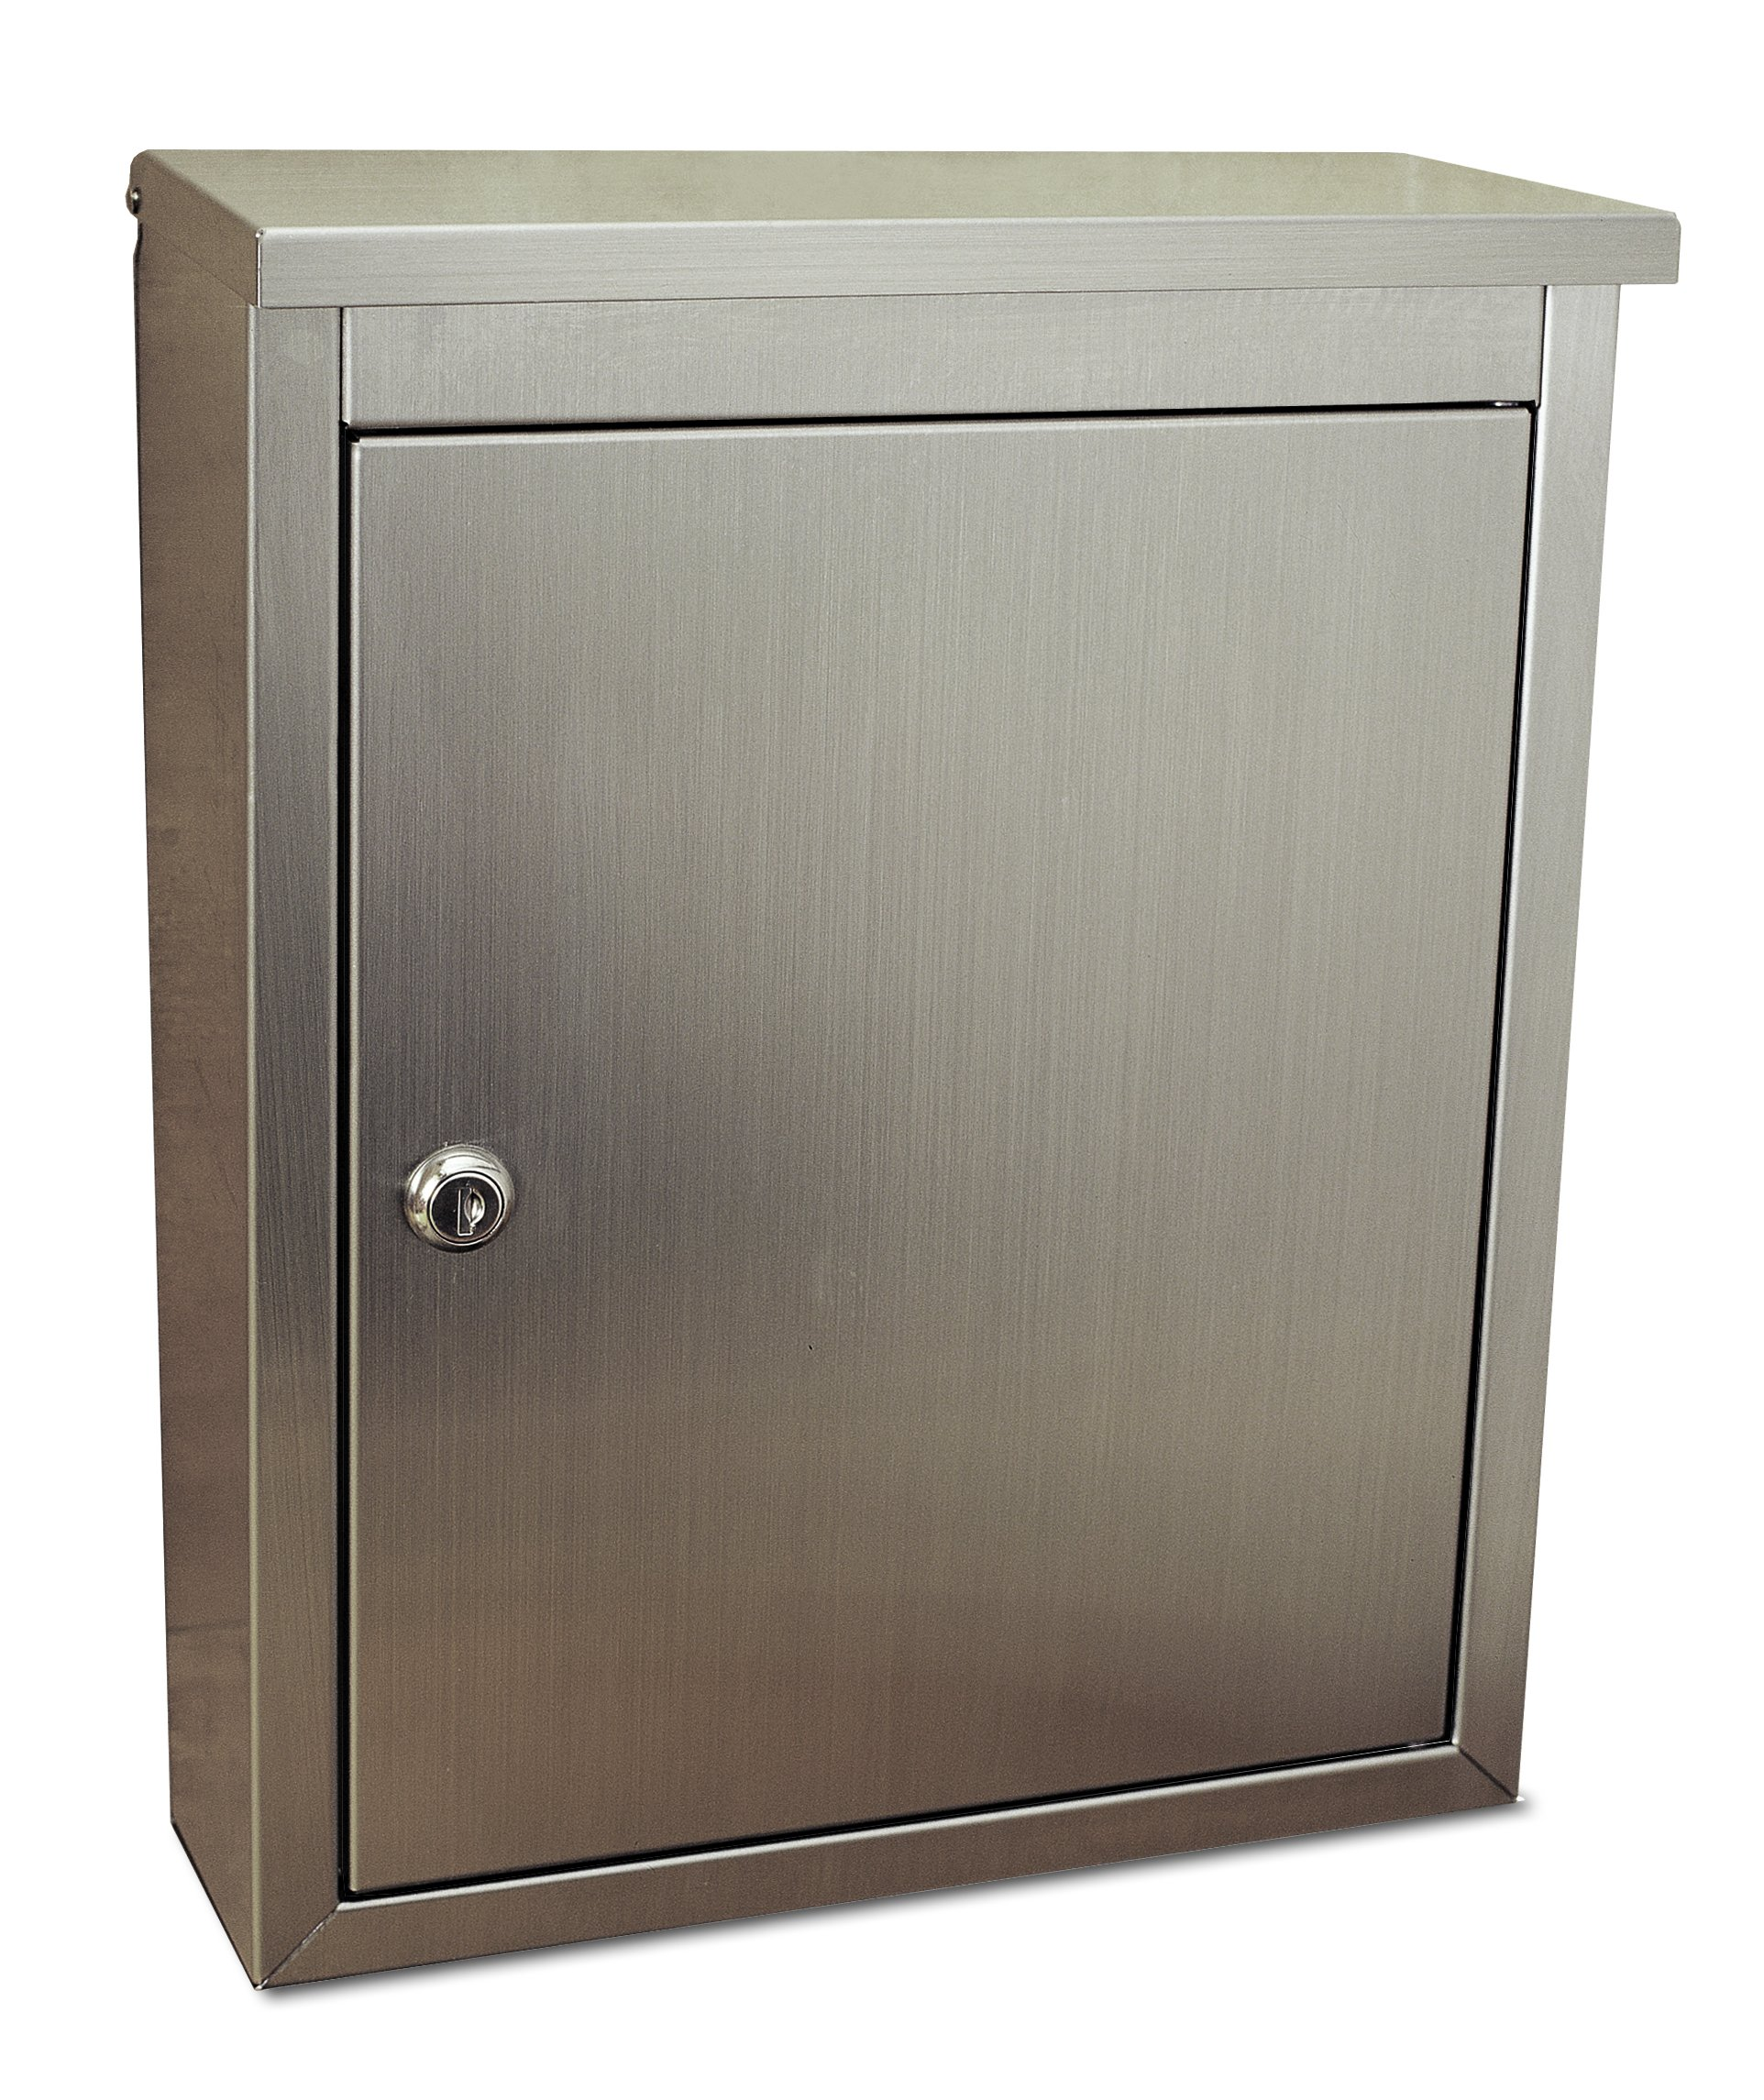 Architectural Mailboxes Metropolis Wall Mailbox, Stainless Steel Satin Finish